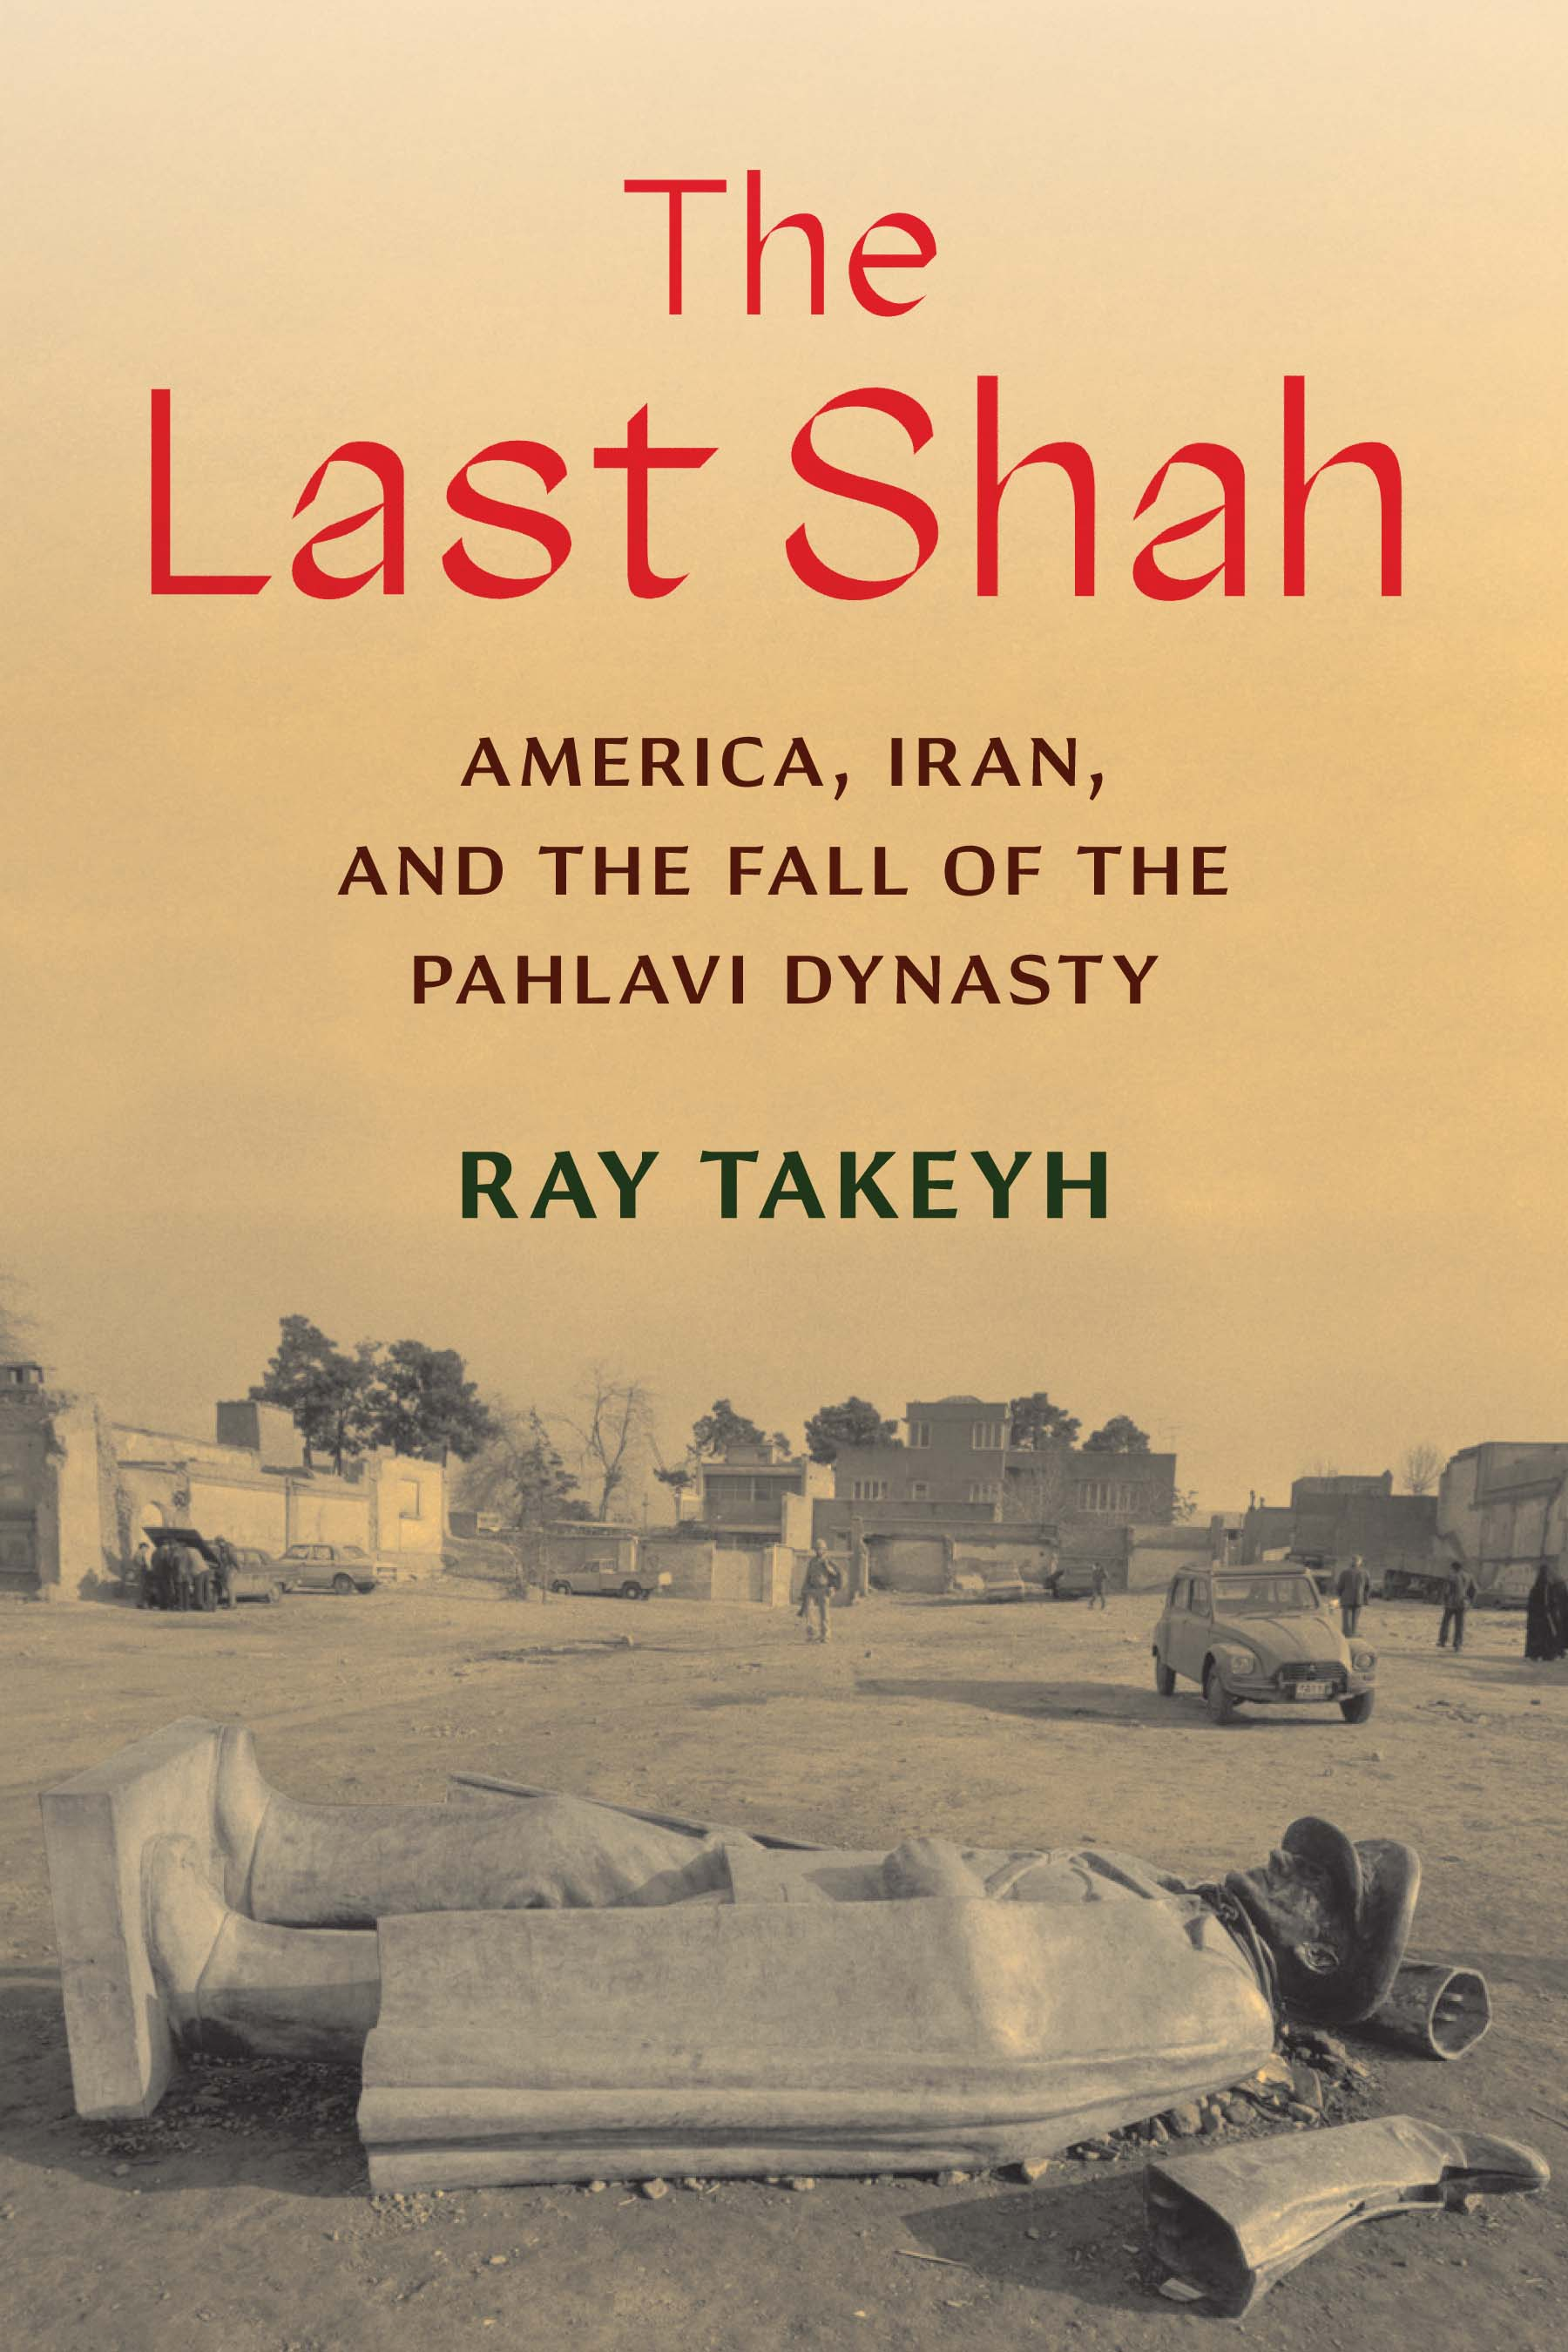 The Last Shah: America, Iran, and the Fall of the Pahlavi Dynasty